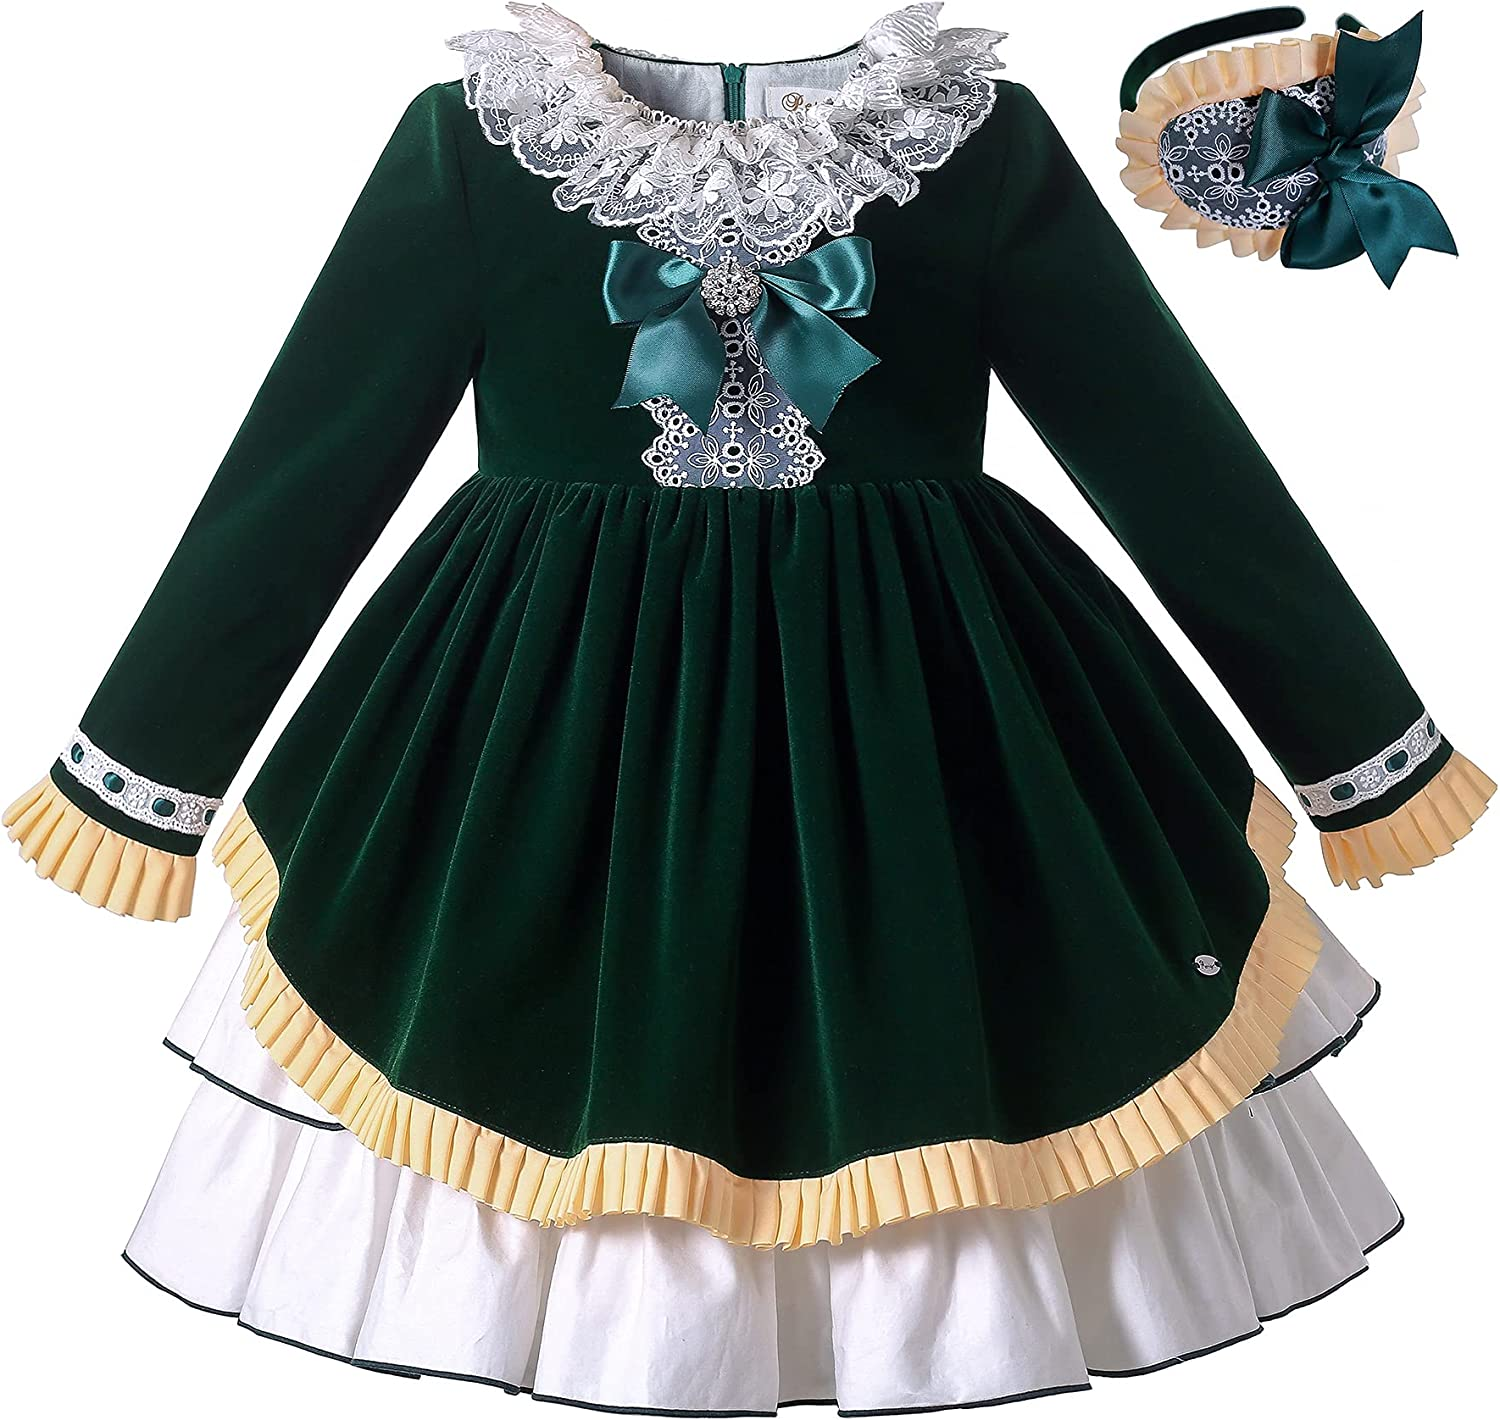 Pettigirl Girl Vintage Autumn Winter Christmas Long Special price Popular products for a limited time Sleeve Green